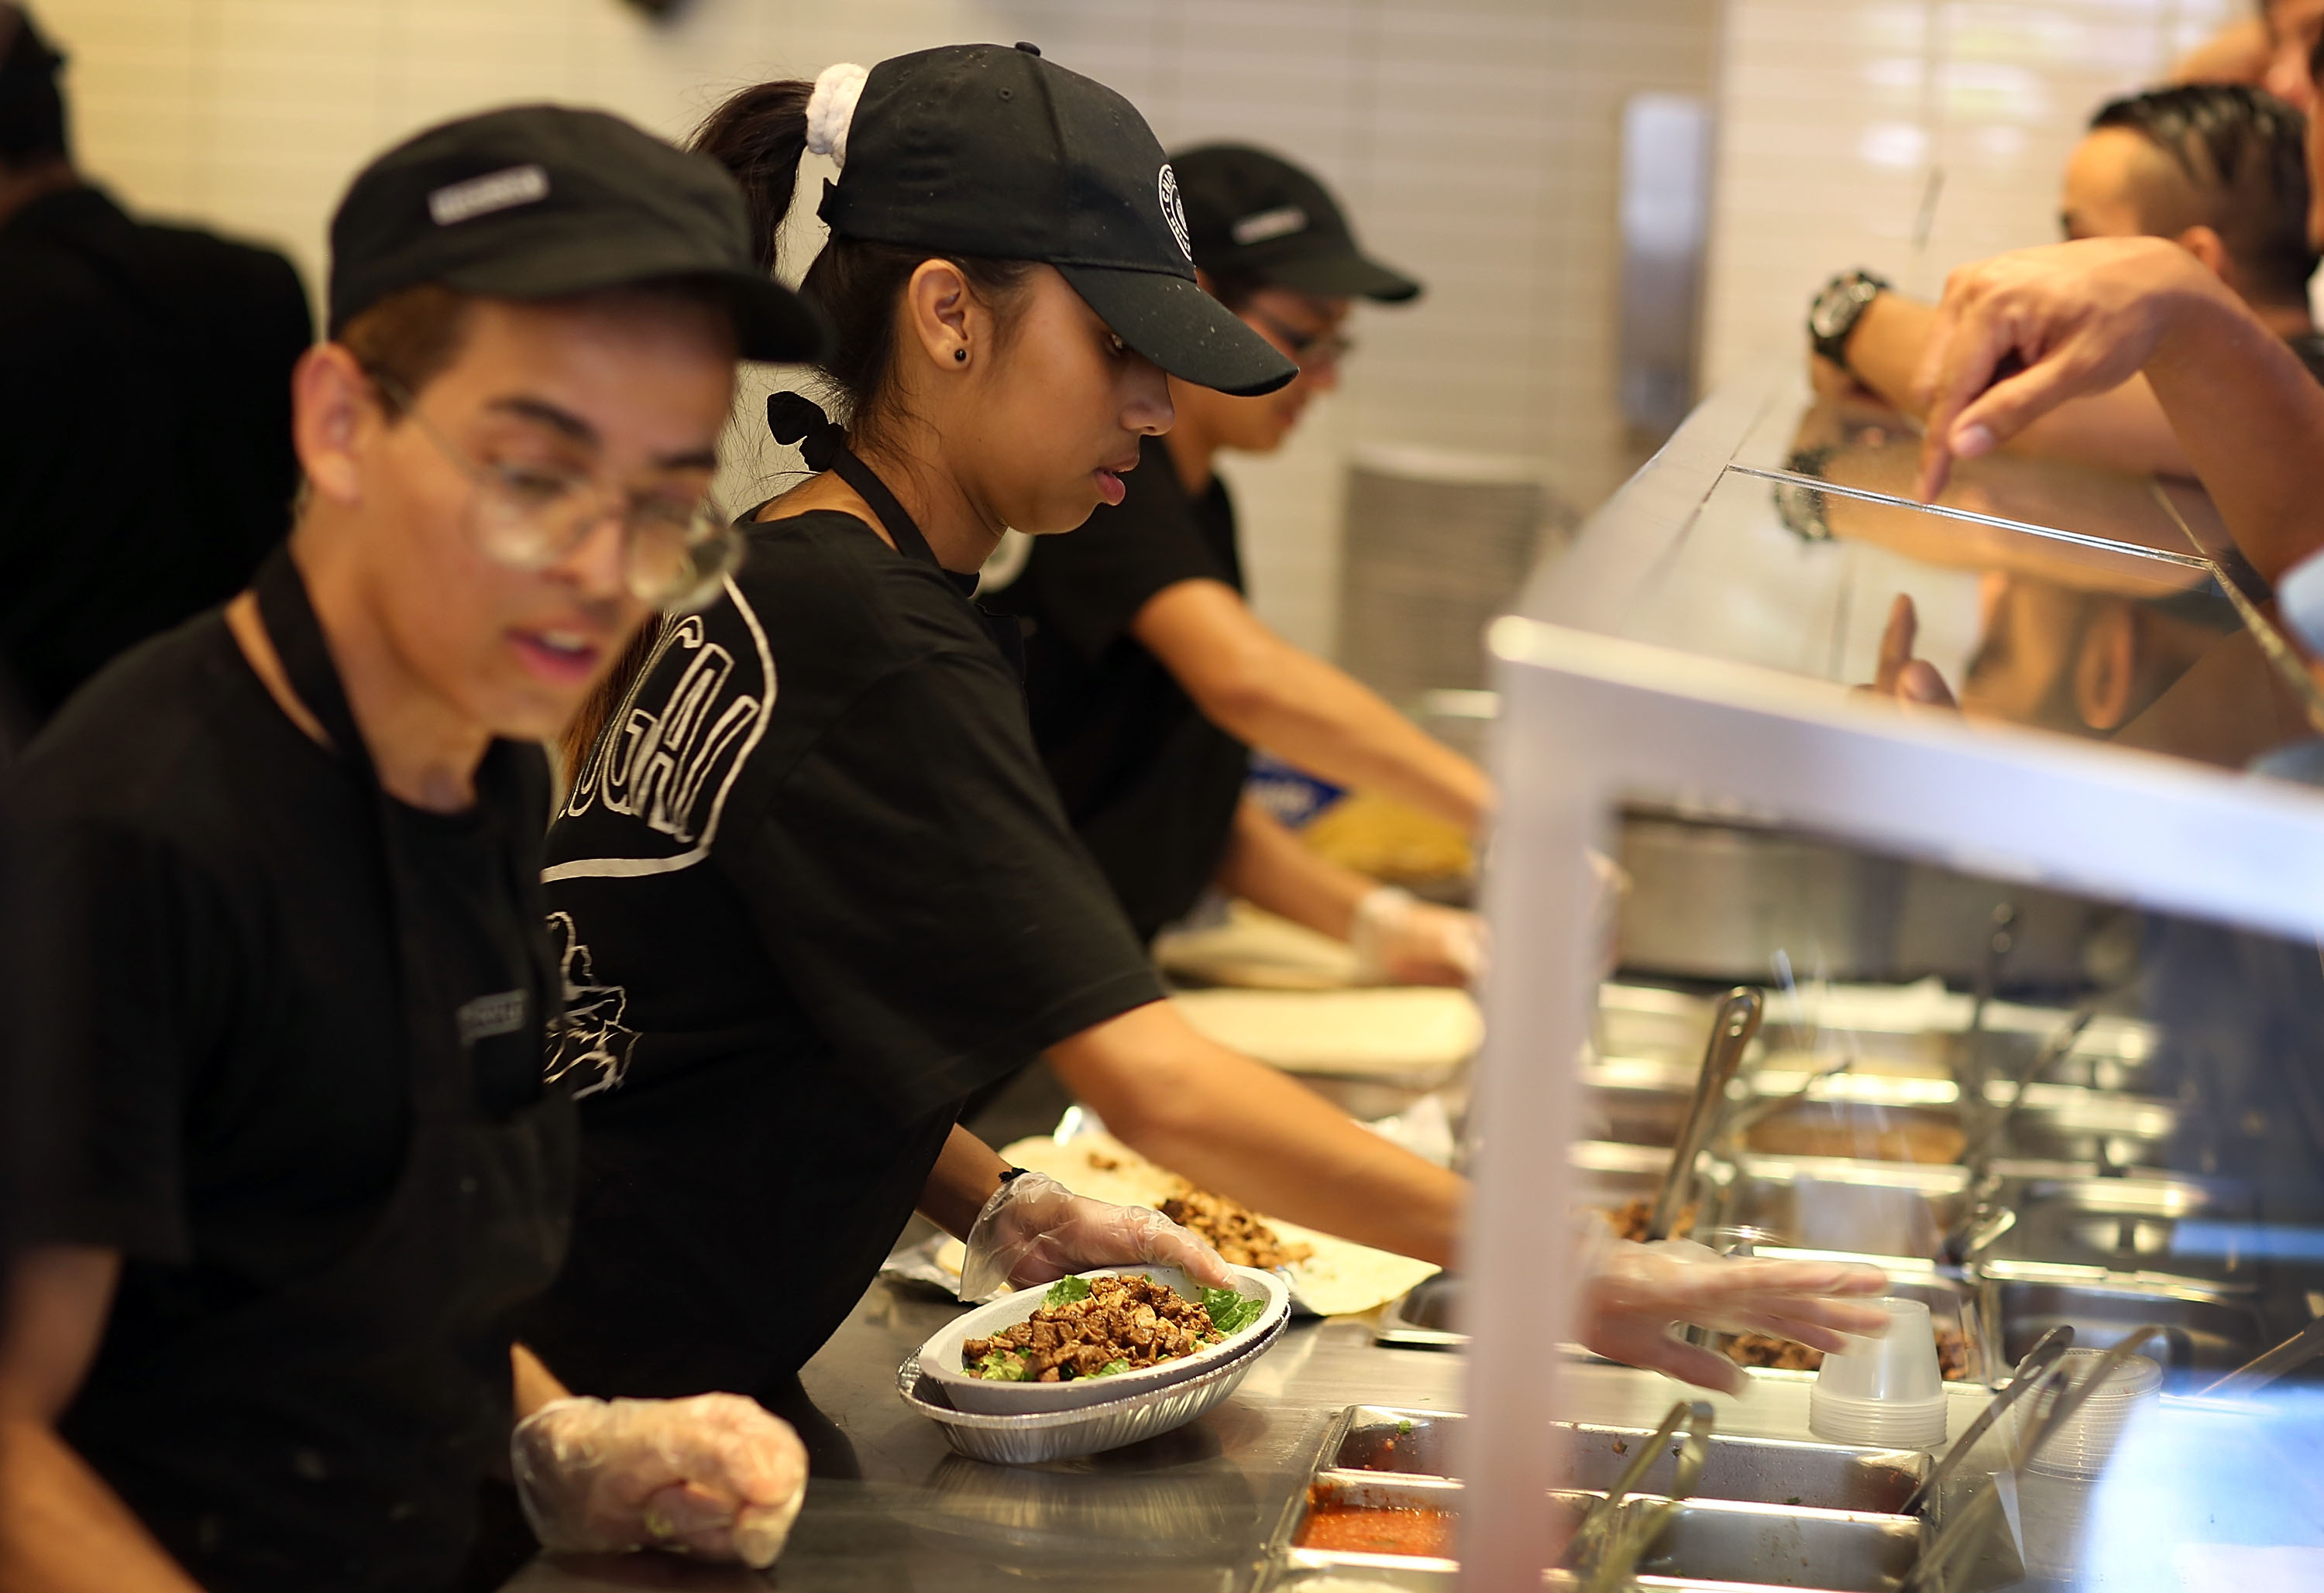 Chipotle restaurant workers.